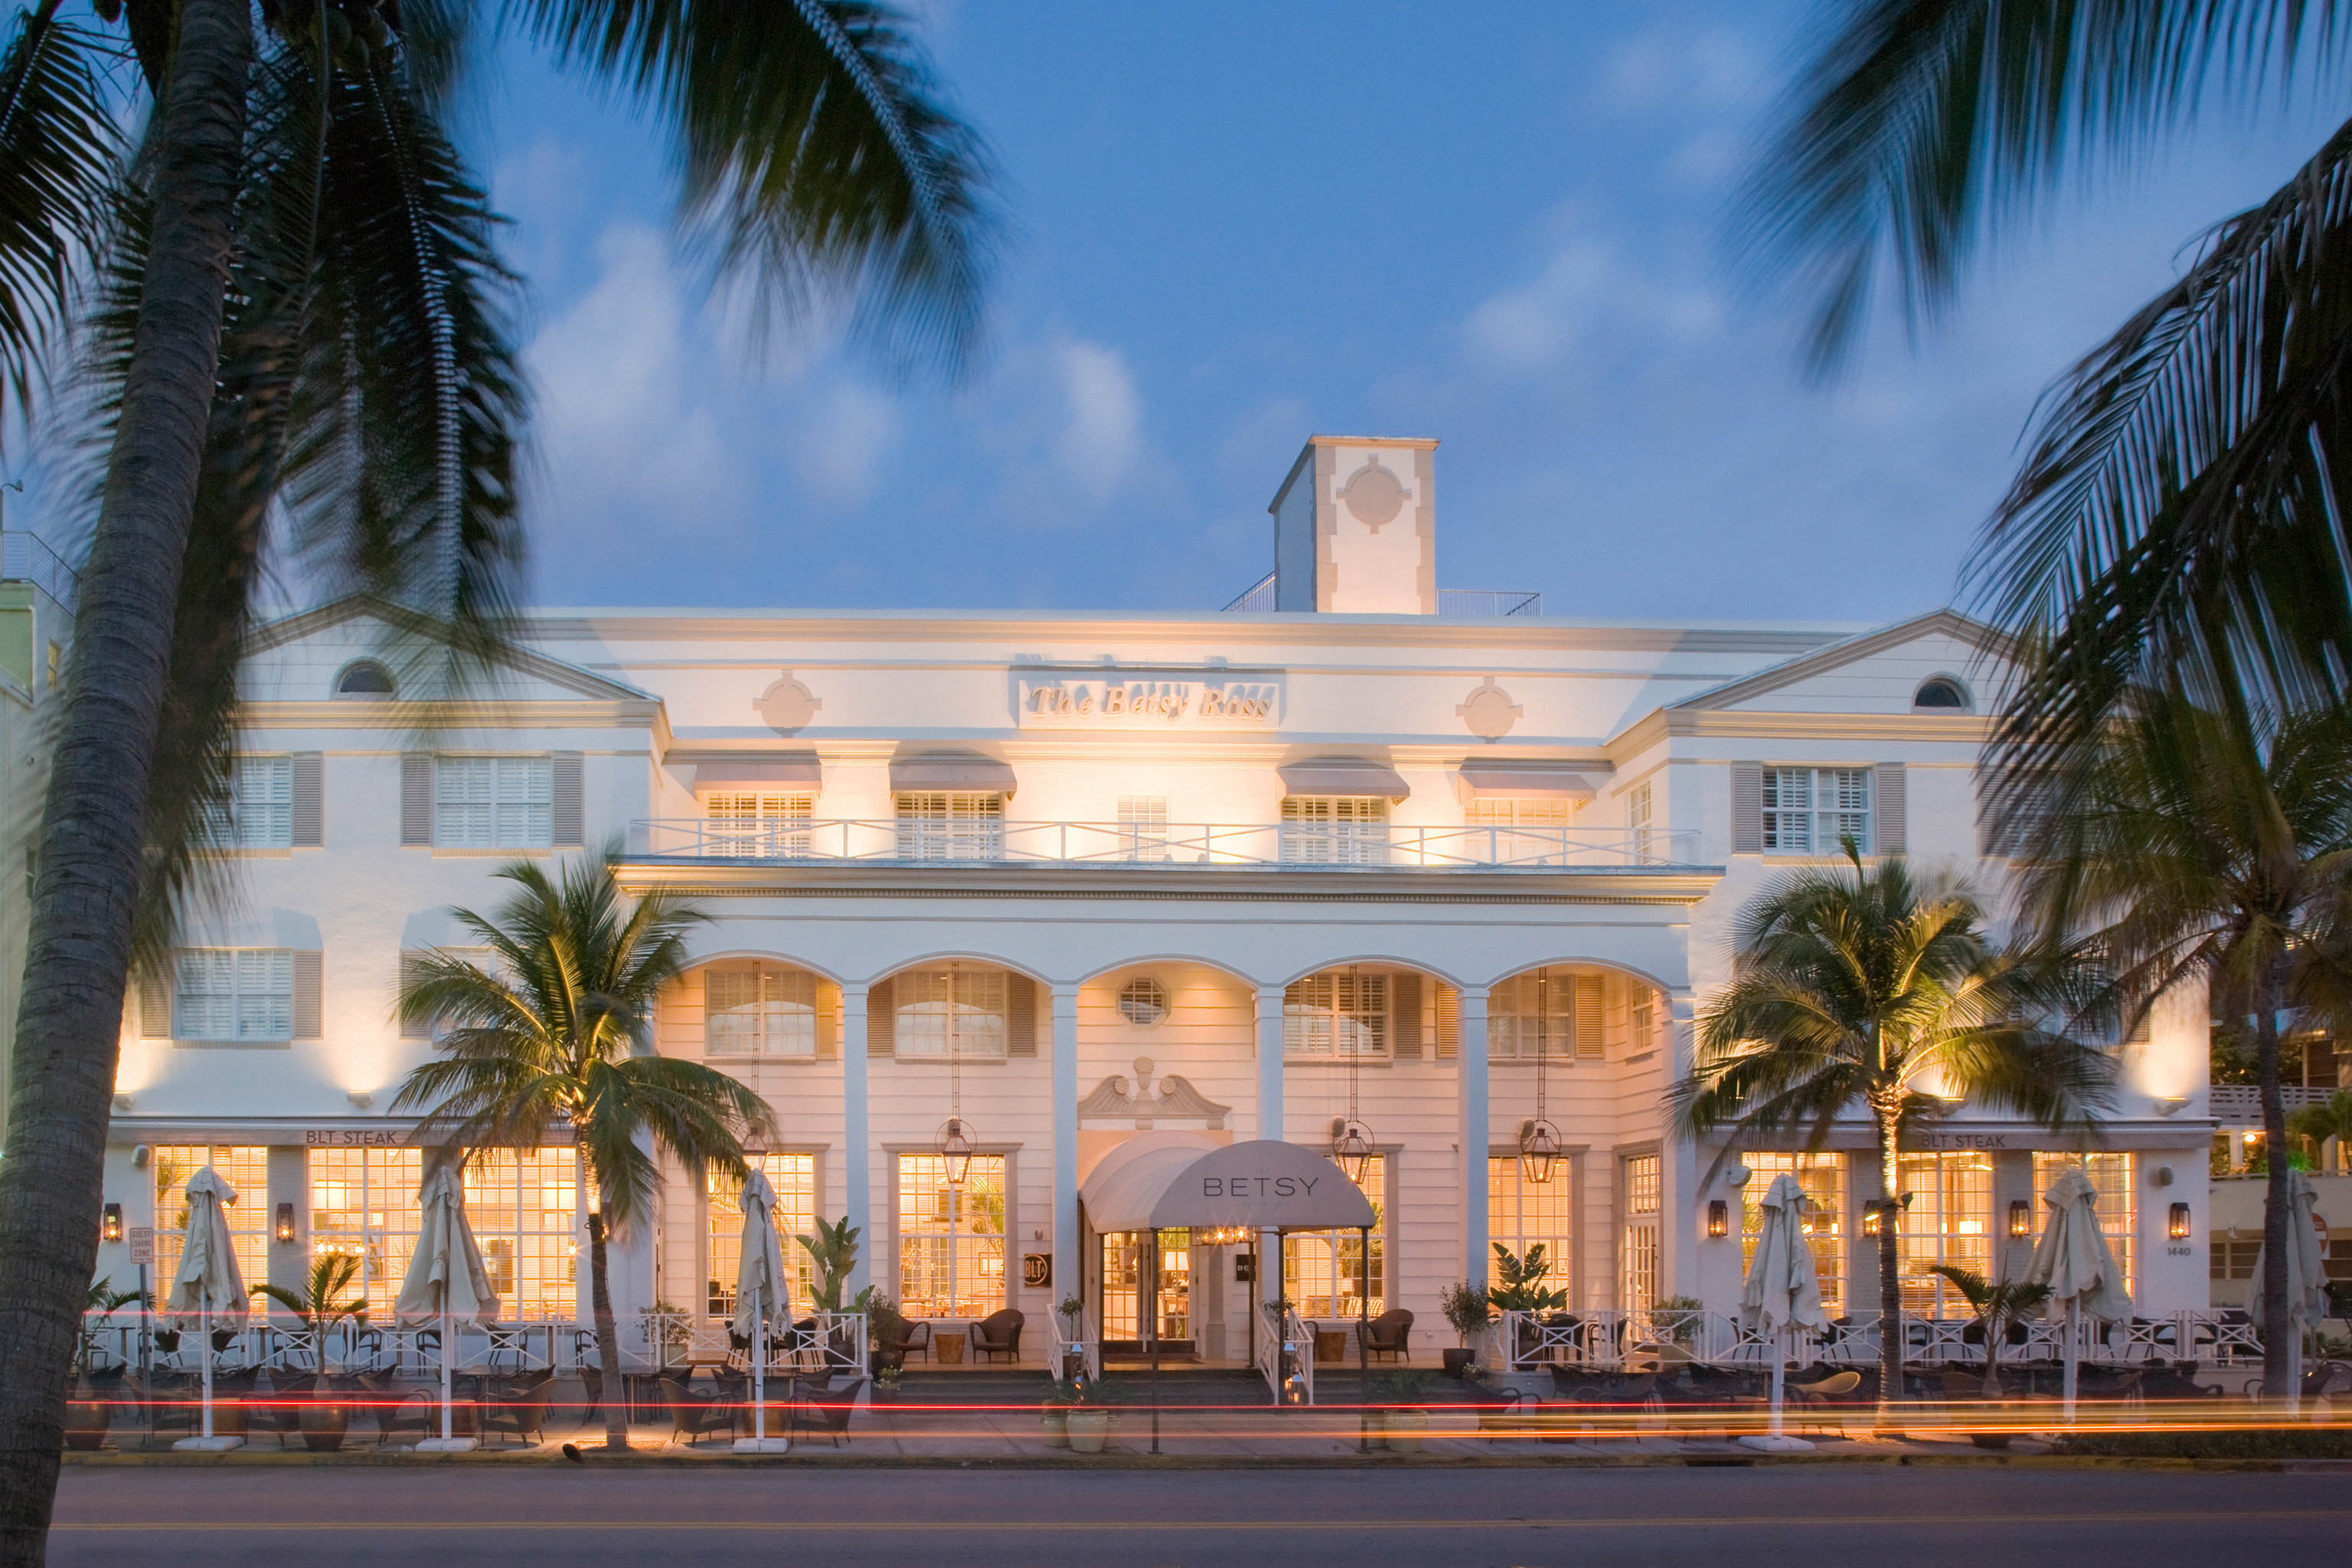 Architecture Buildings Exterior Food + Drink Girls Getaways Hotels Jetsetter Guides Resort shopping Style + Design Weekend Getaways outdoor tree sky road palm landmark building street house vacation estate plant palace Downtown plaza home facade arecales City